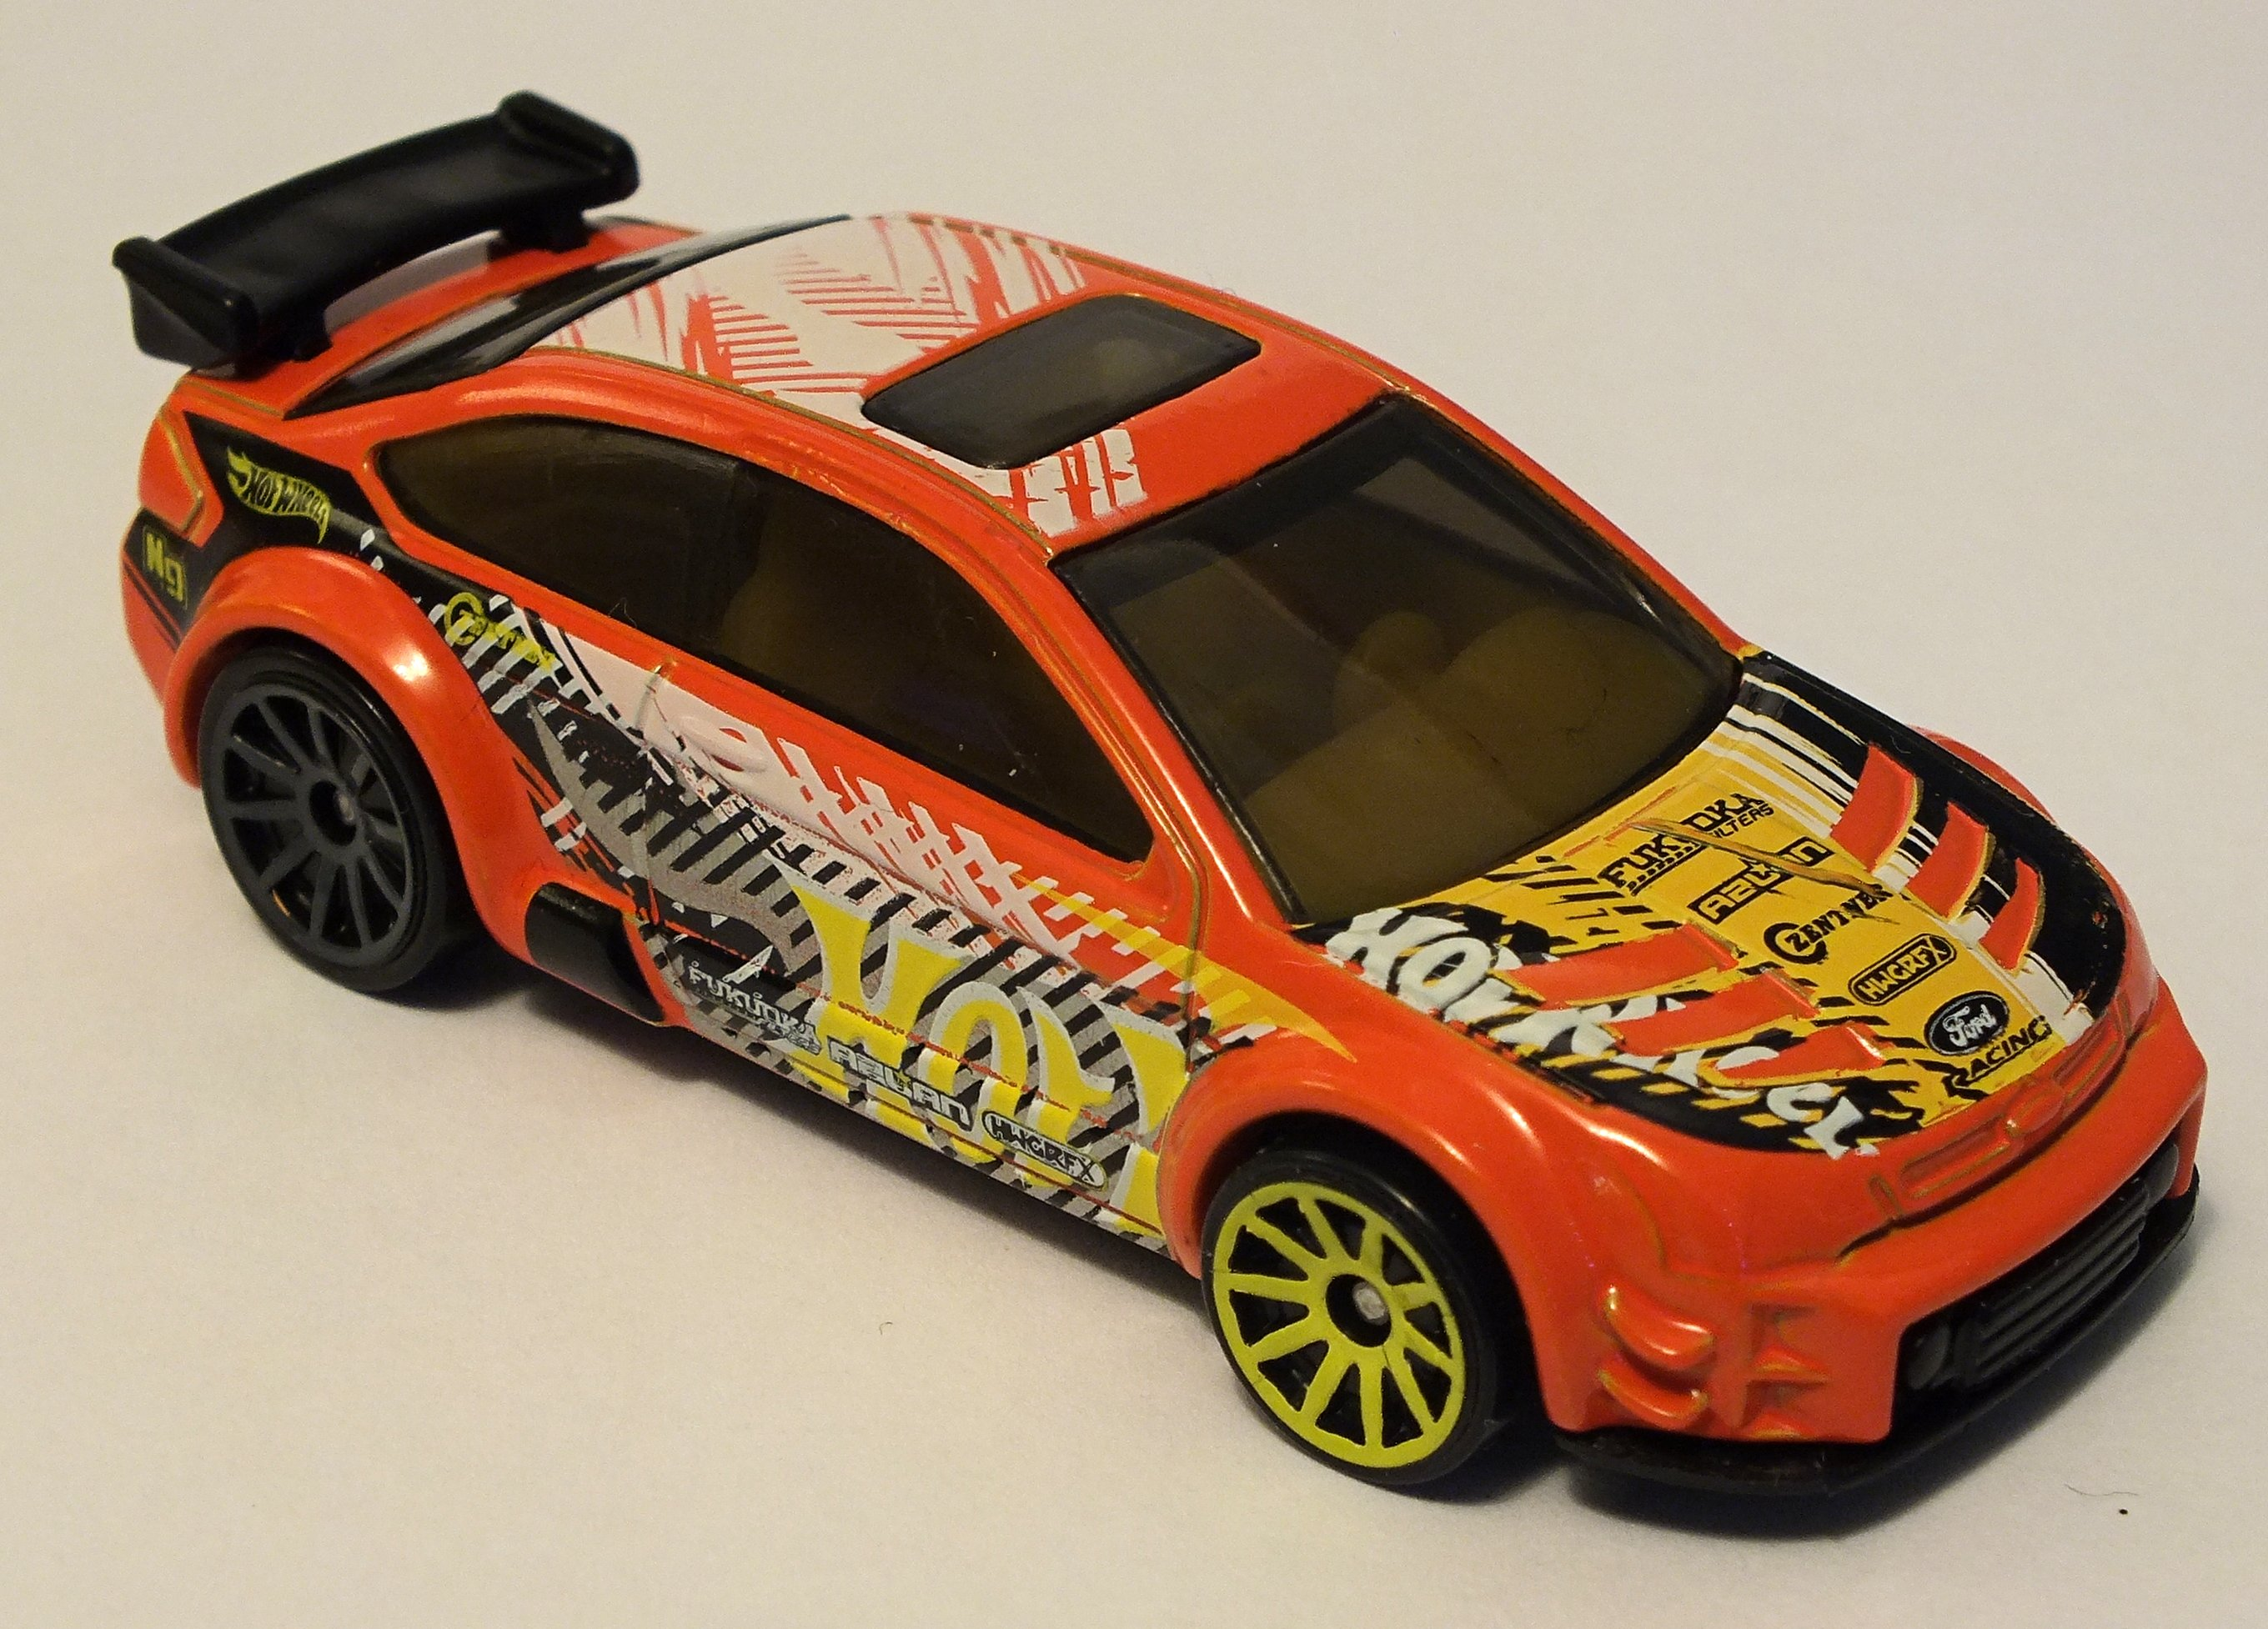 versions toyota supra hot wheels 2013 - Rare Hot Wheels Cars 2013